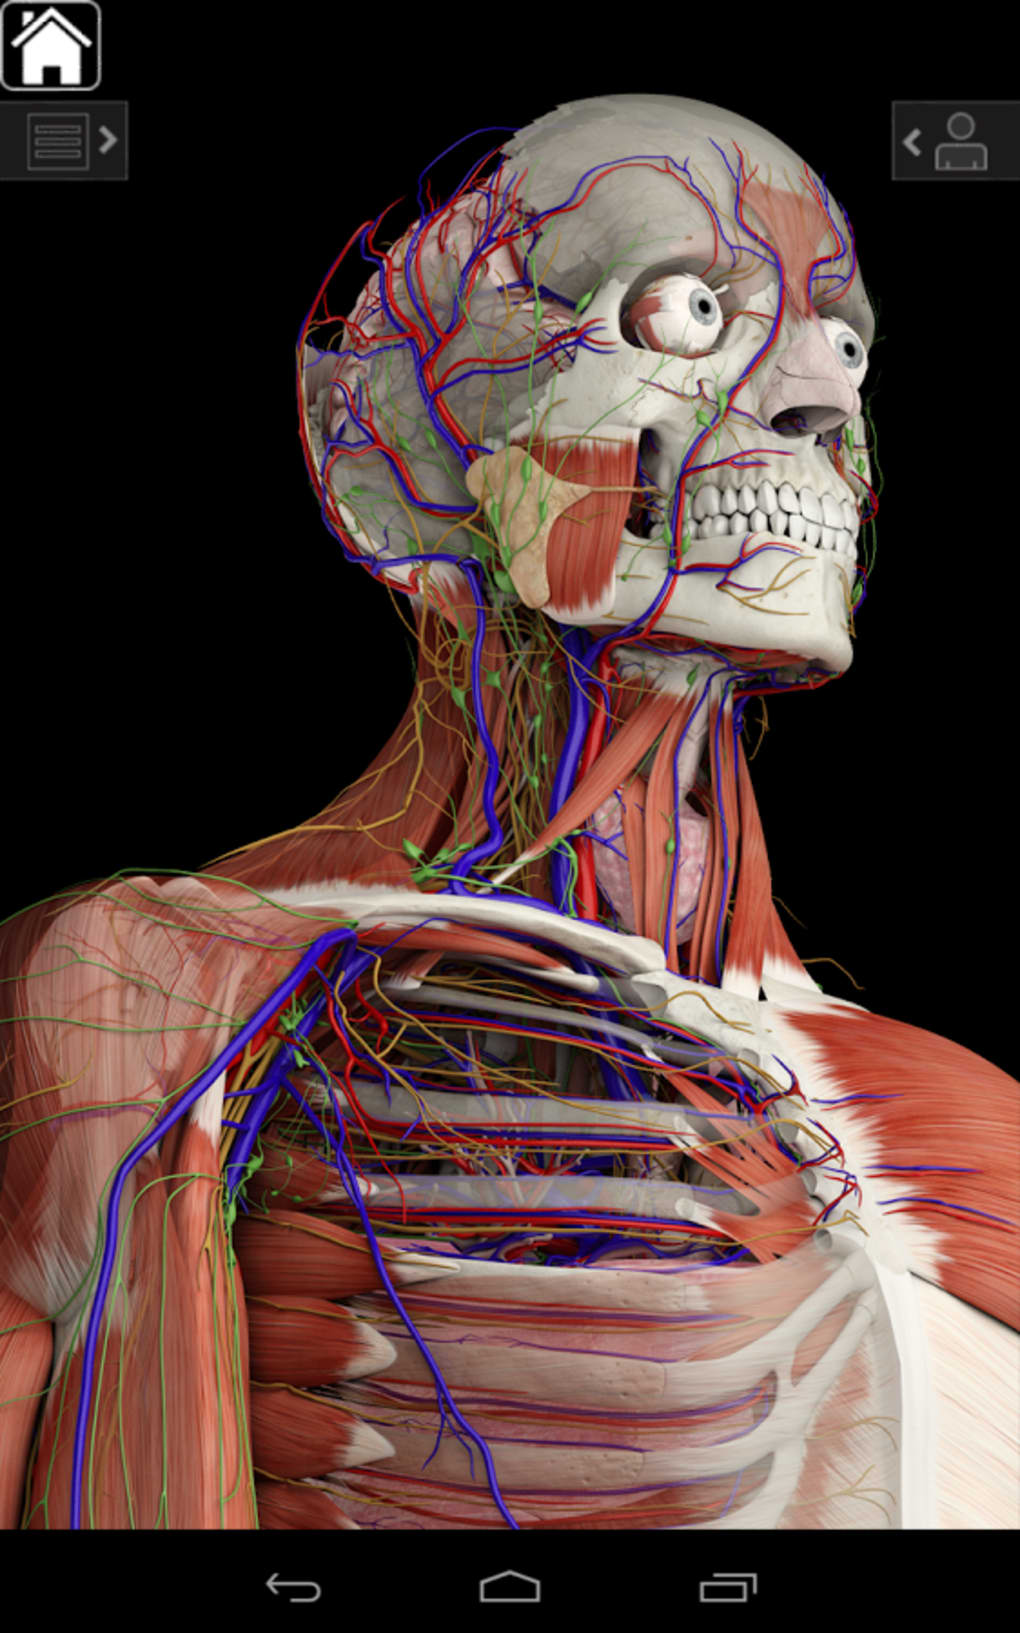 Essential Anatomy for Android - Download